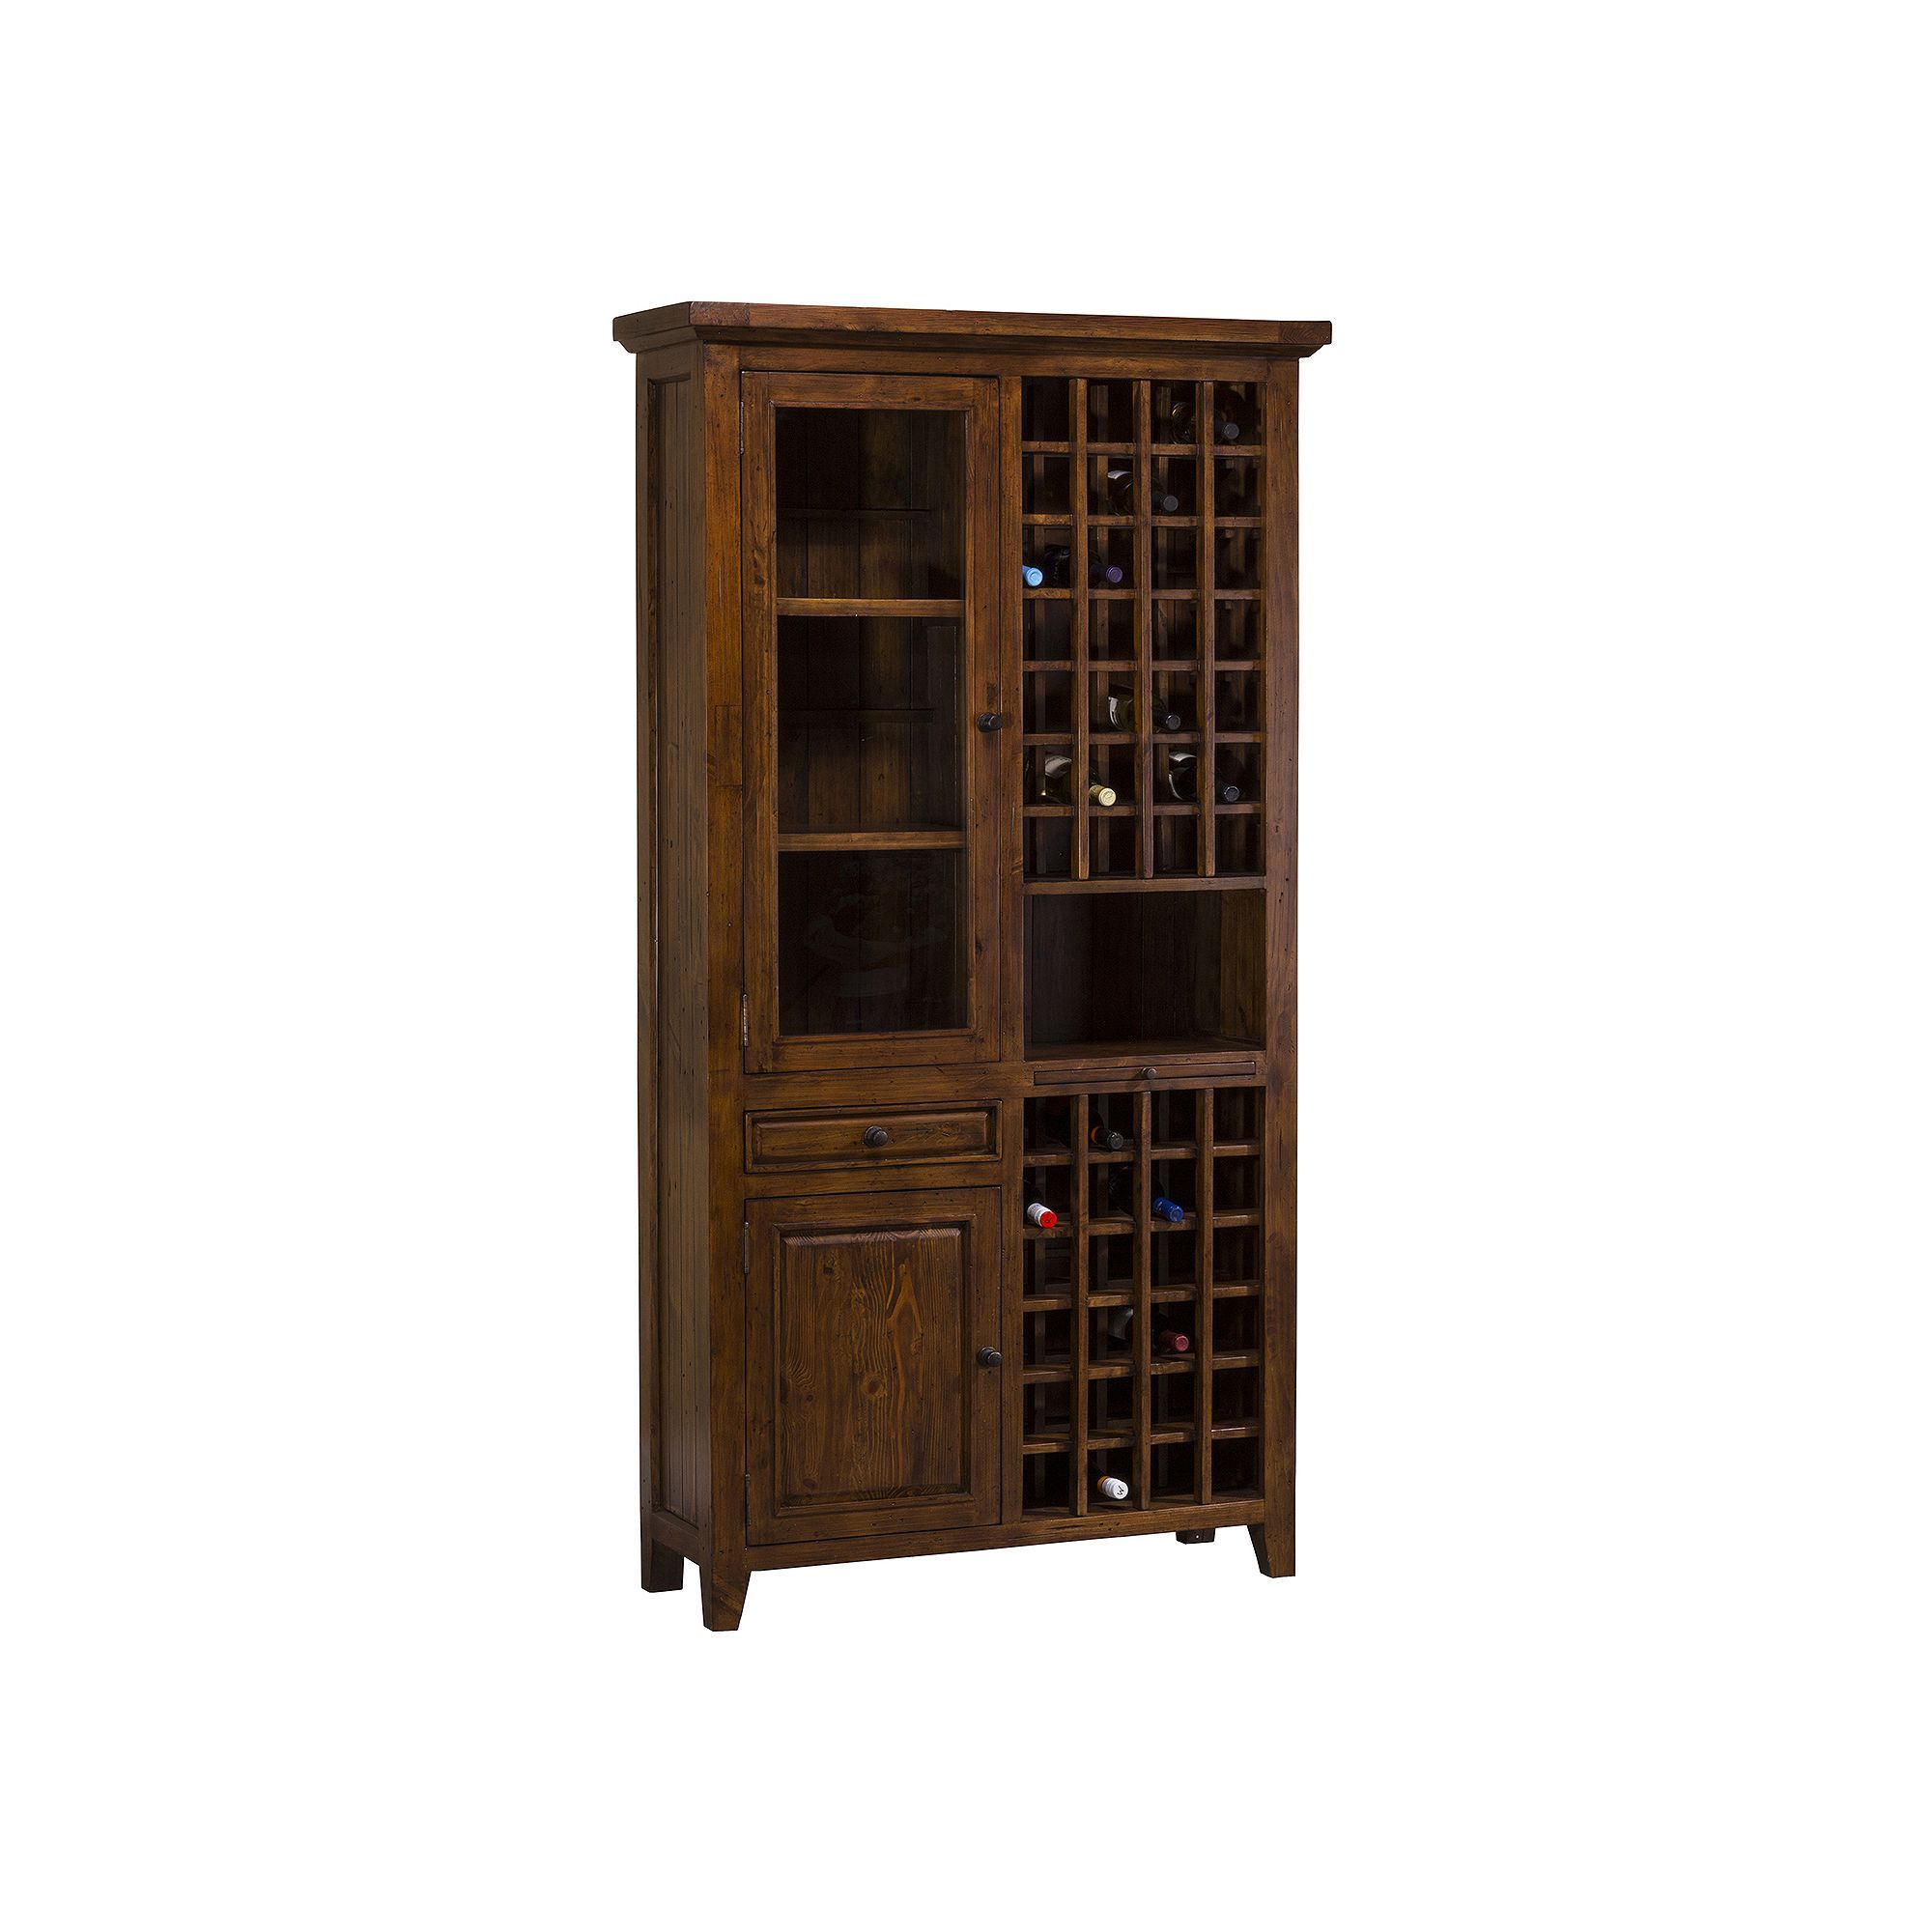 related cabinet pinterest rustic western bar pin wine and basement image